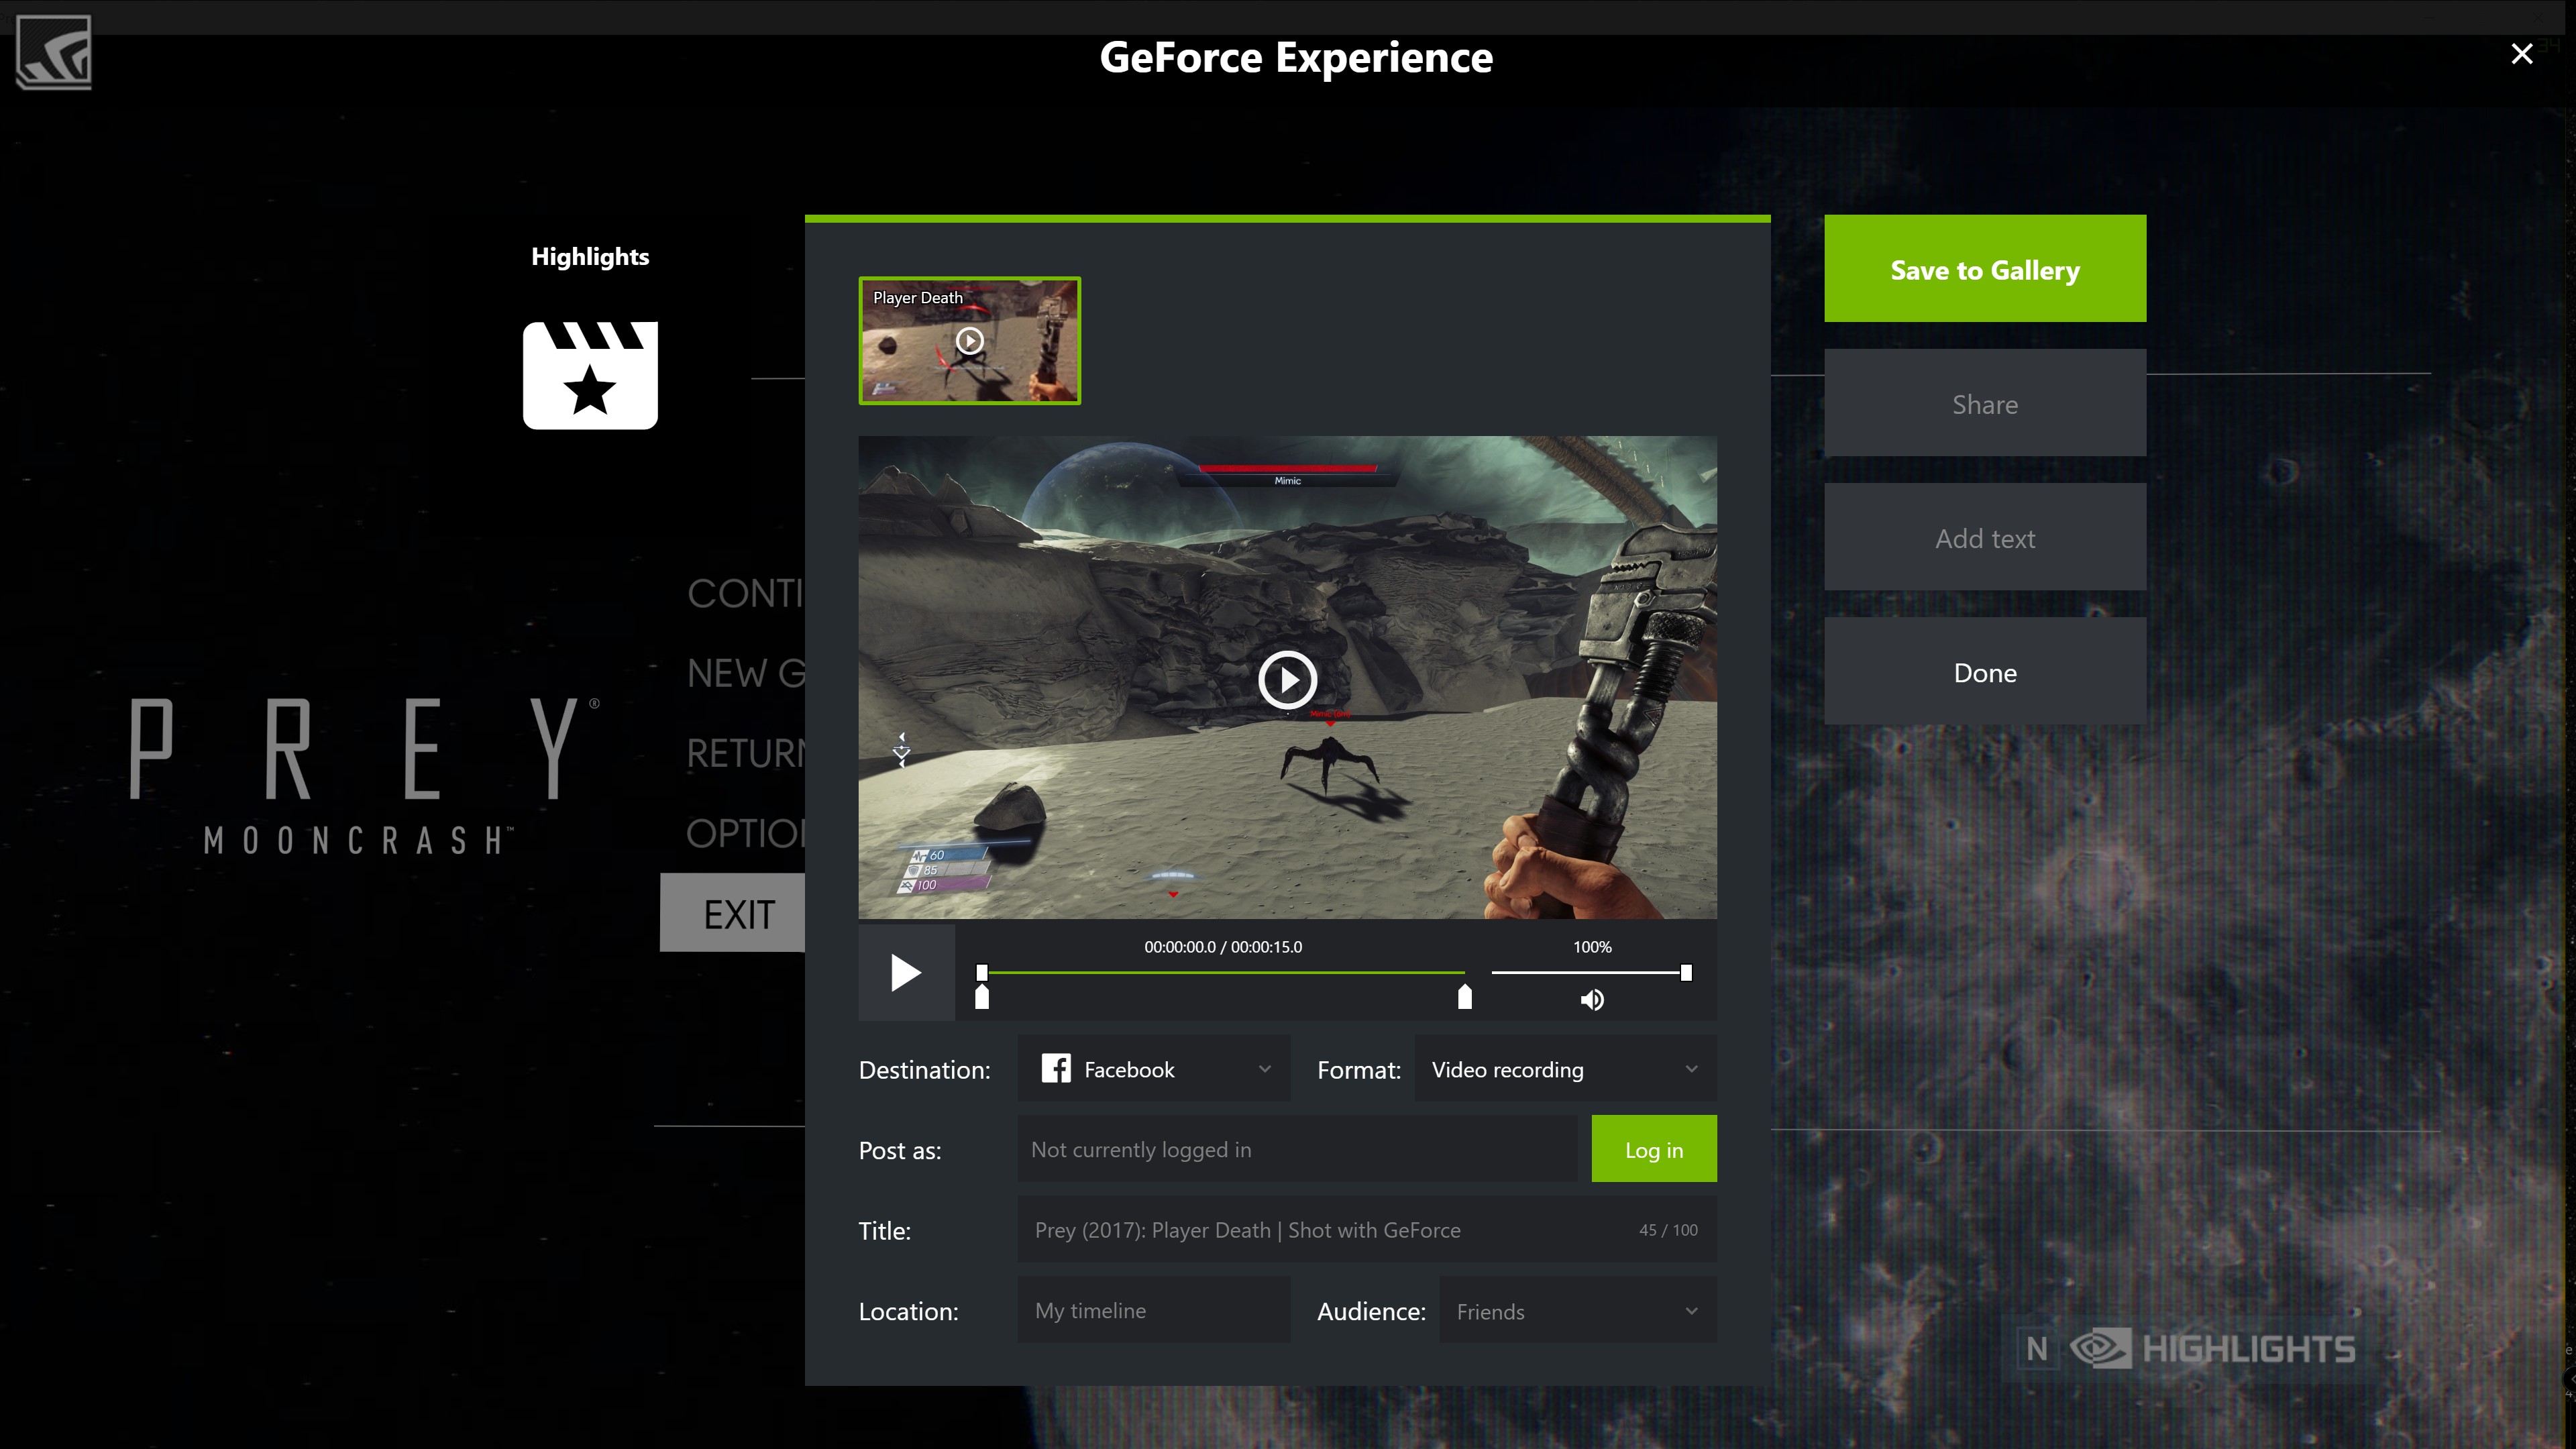 GeForce Experience Is Bringing New Ray Tracing And AI Tech To Gamers